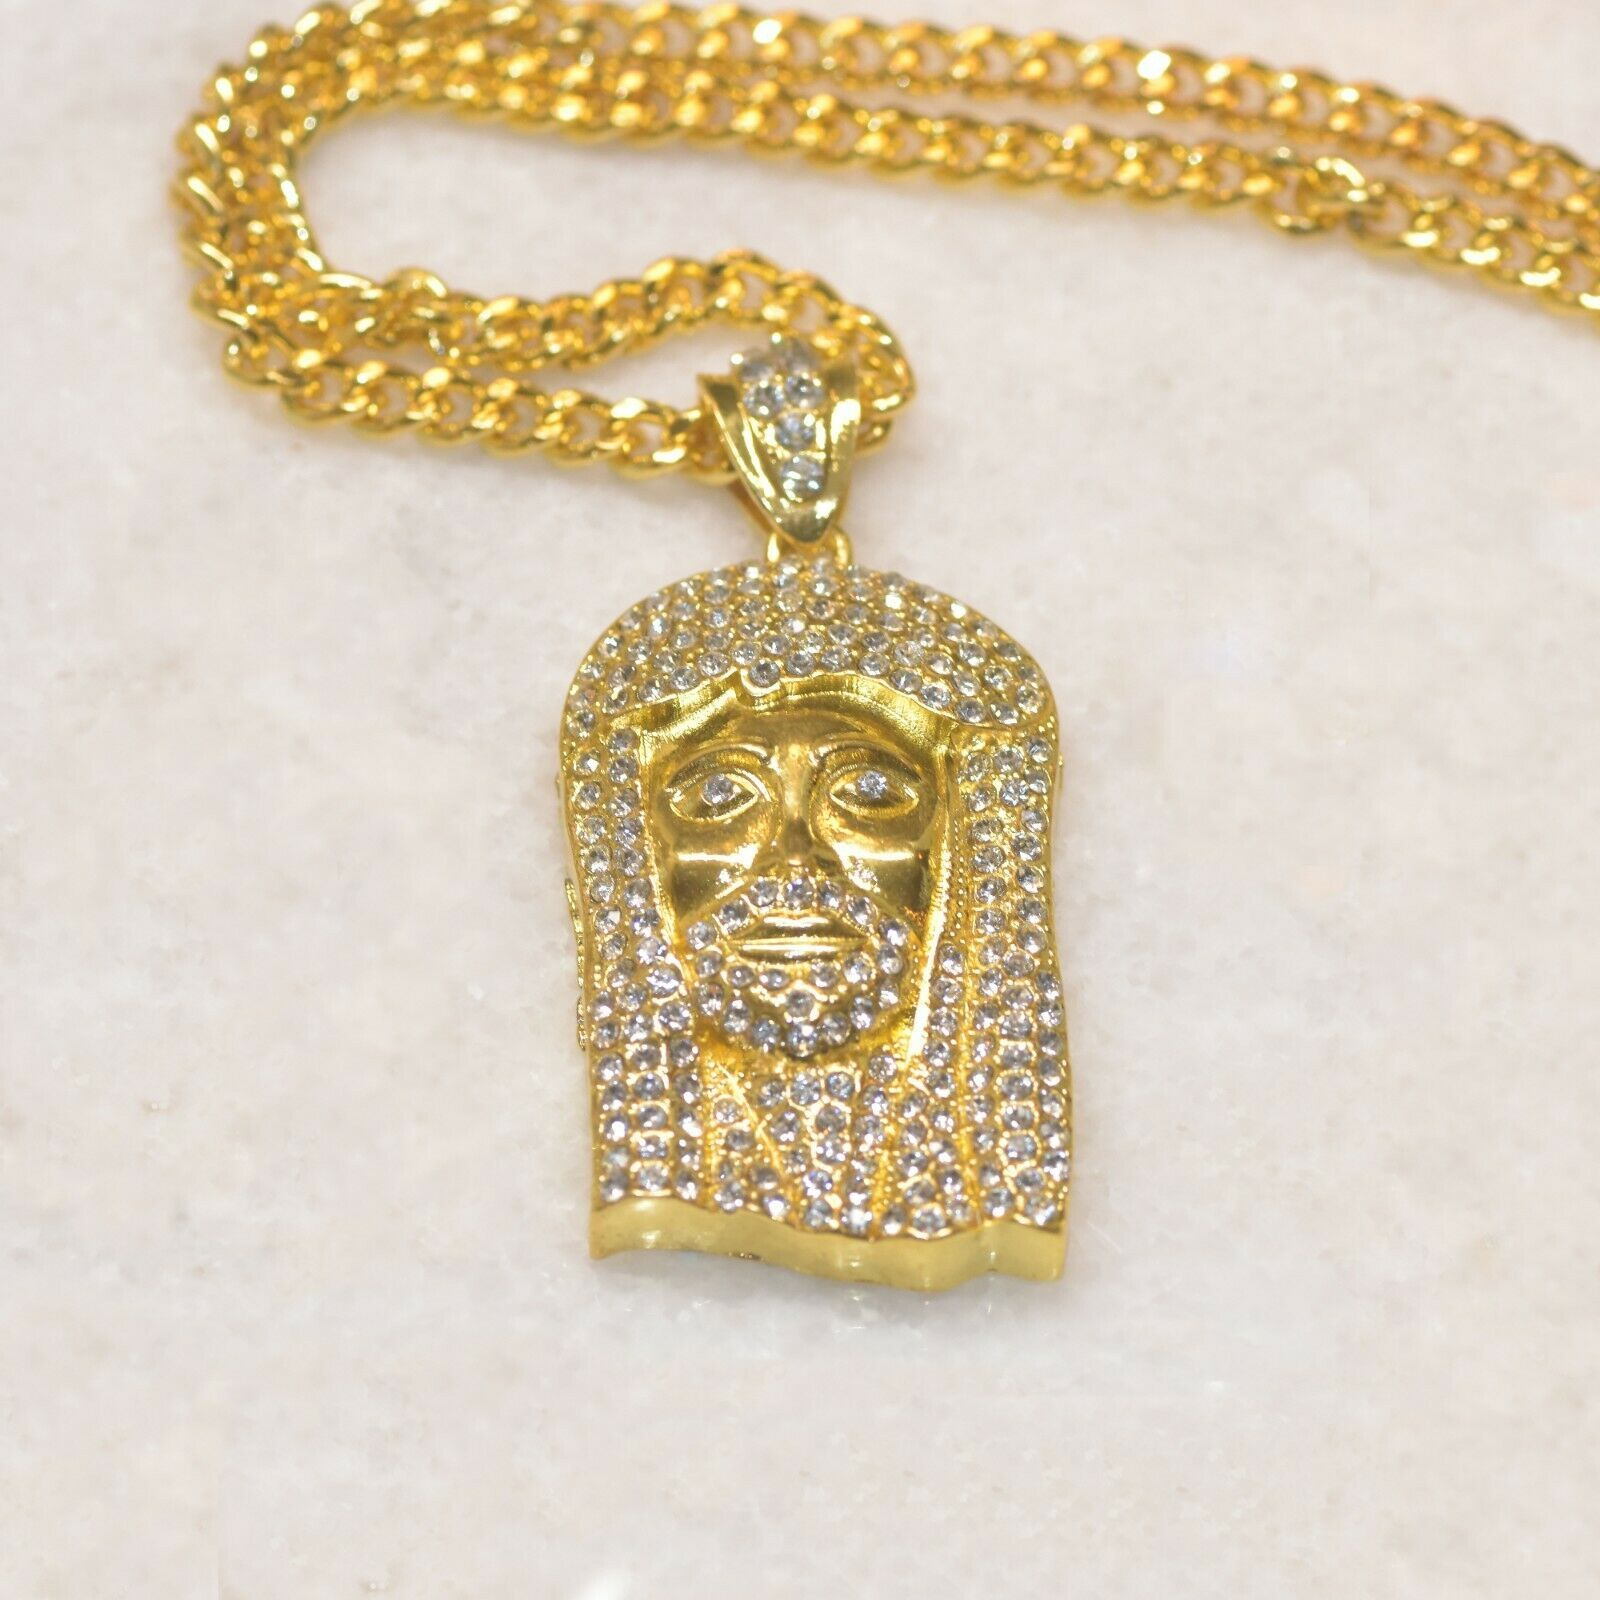 Primary image for ICED OUT RELIGIOUS JESUS FACE & BABY ANGEL PENDANTS + CHAIN NECKLACE